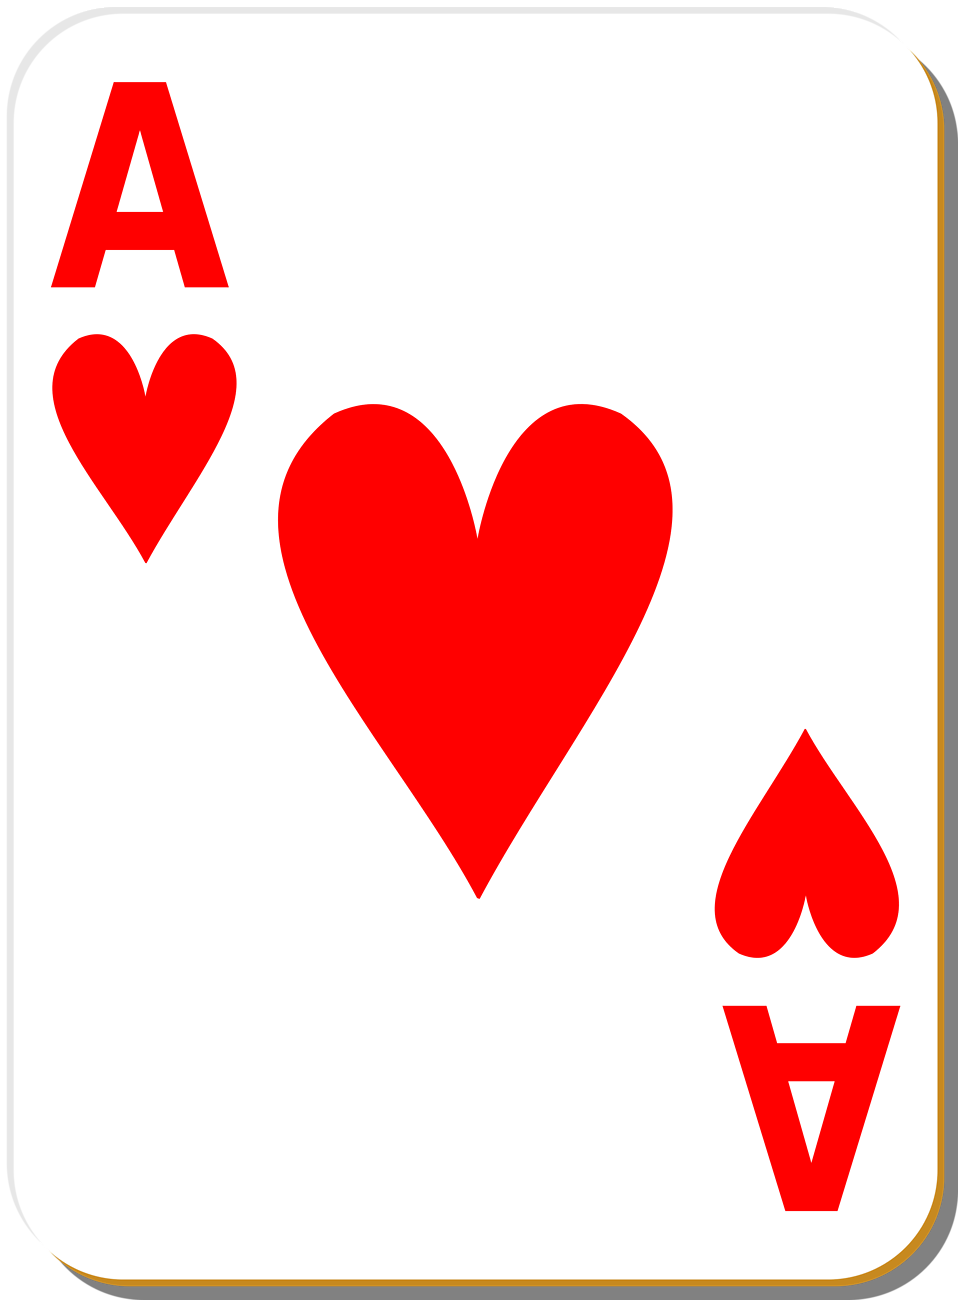 Ace Heart Playing Card Clip Art